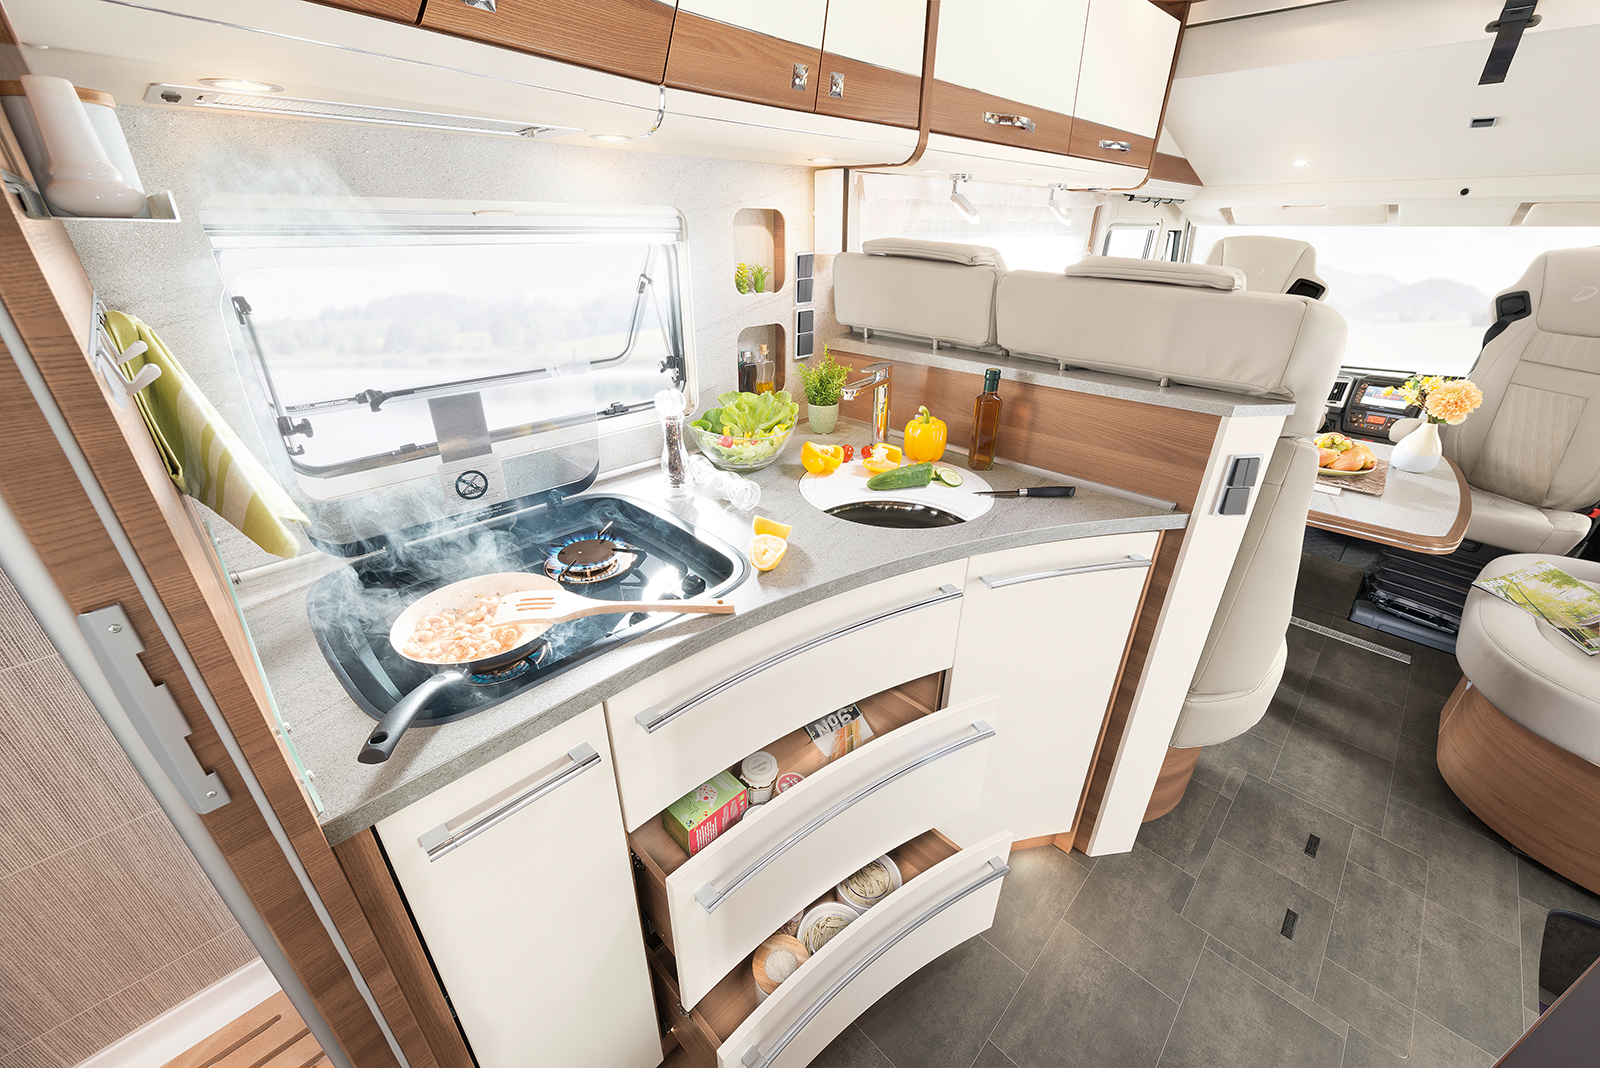 Plenty of cooking fun! The GourmetPlus kitchen brings together everything you need to cook up a storm! With plenty of elbow room and storage space, as well as an automatic locking of the drawers at the start of travel